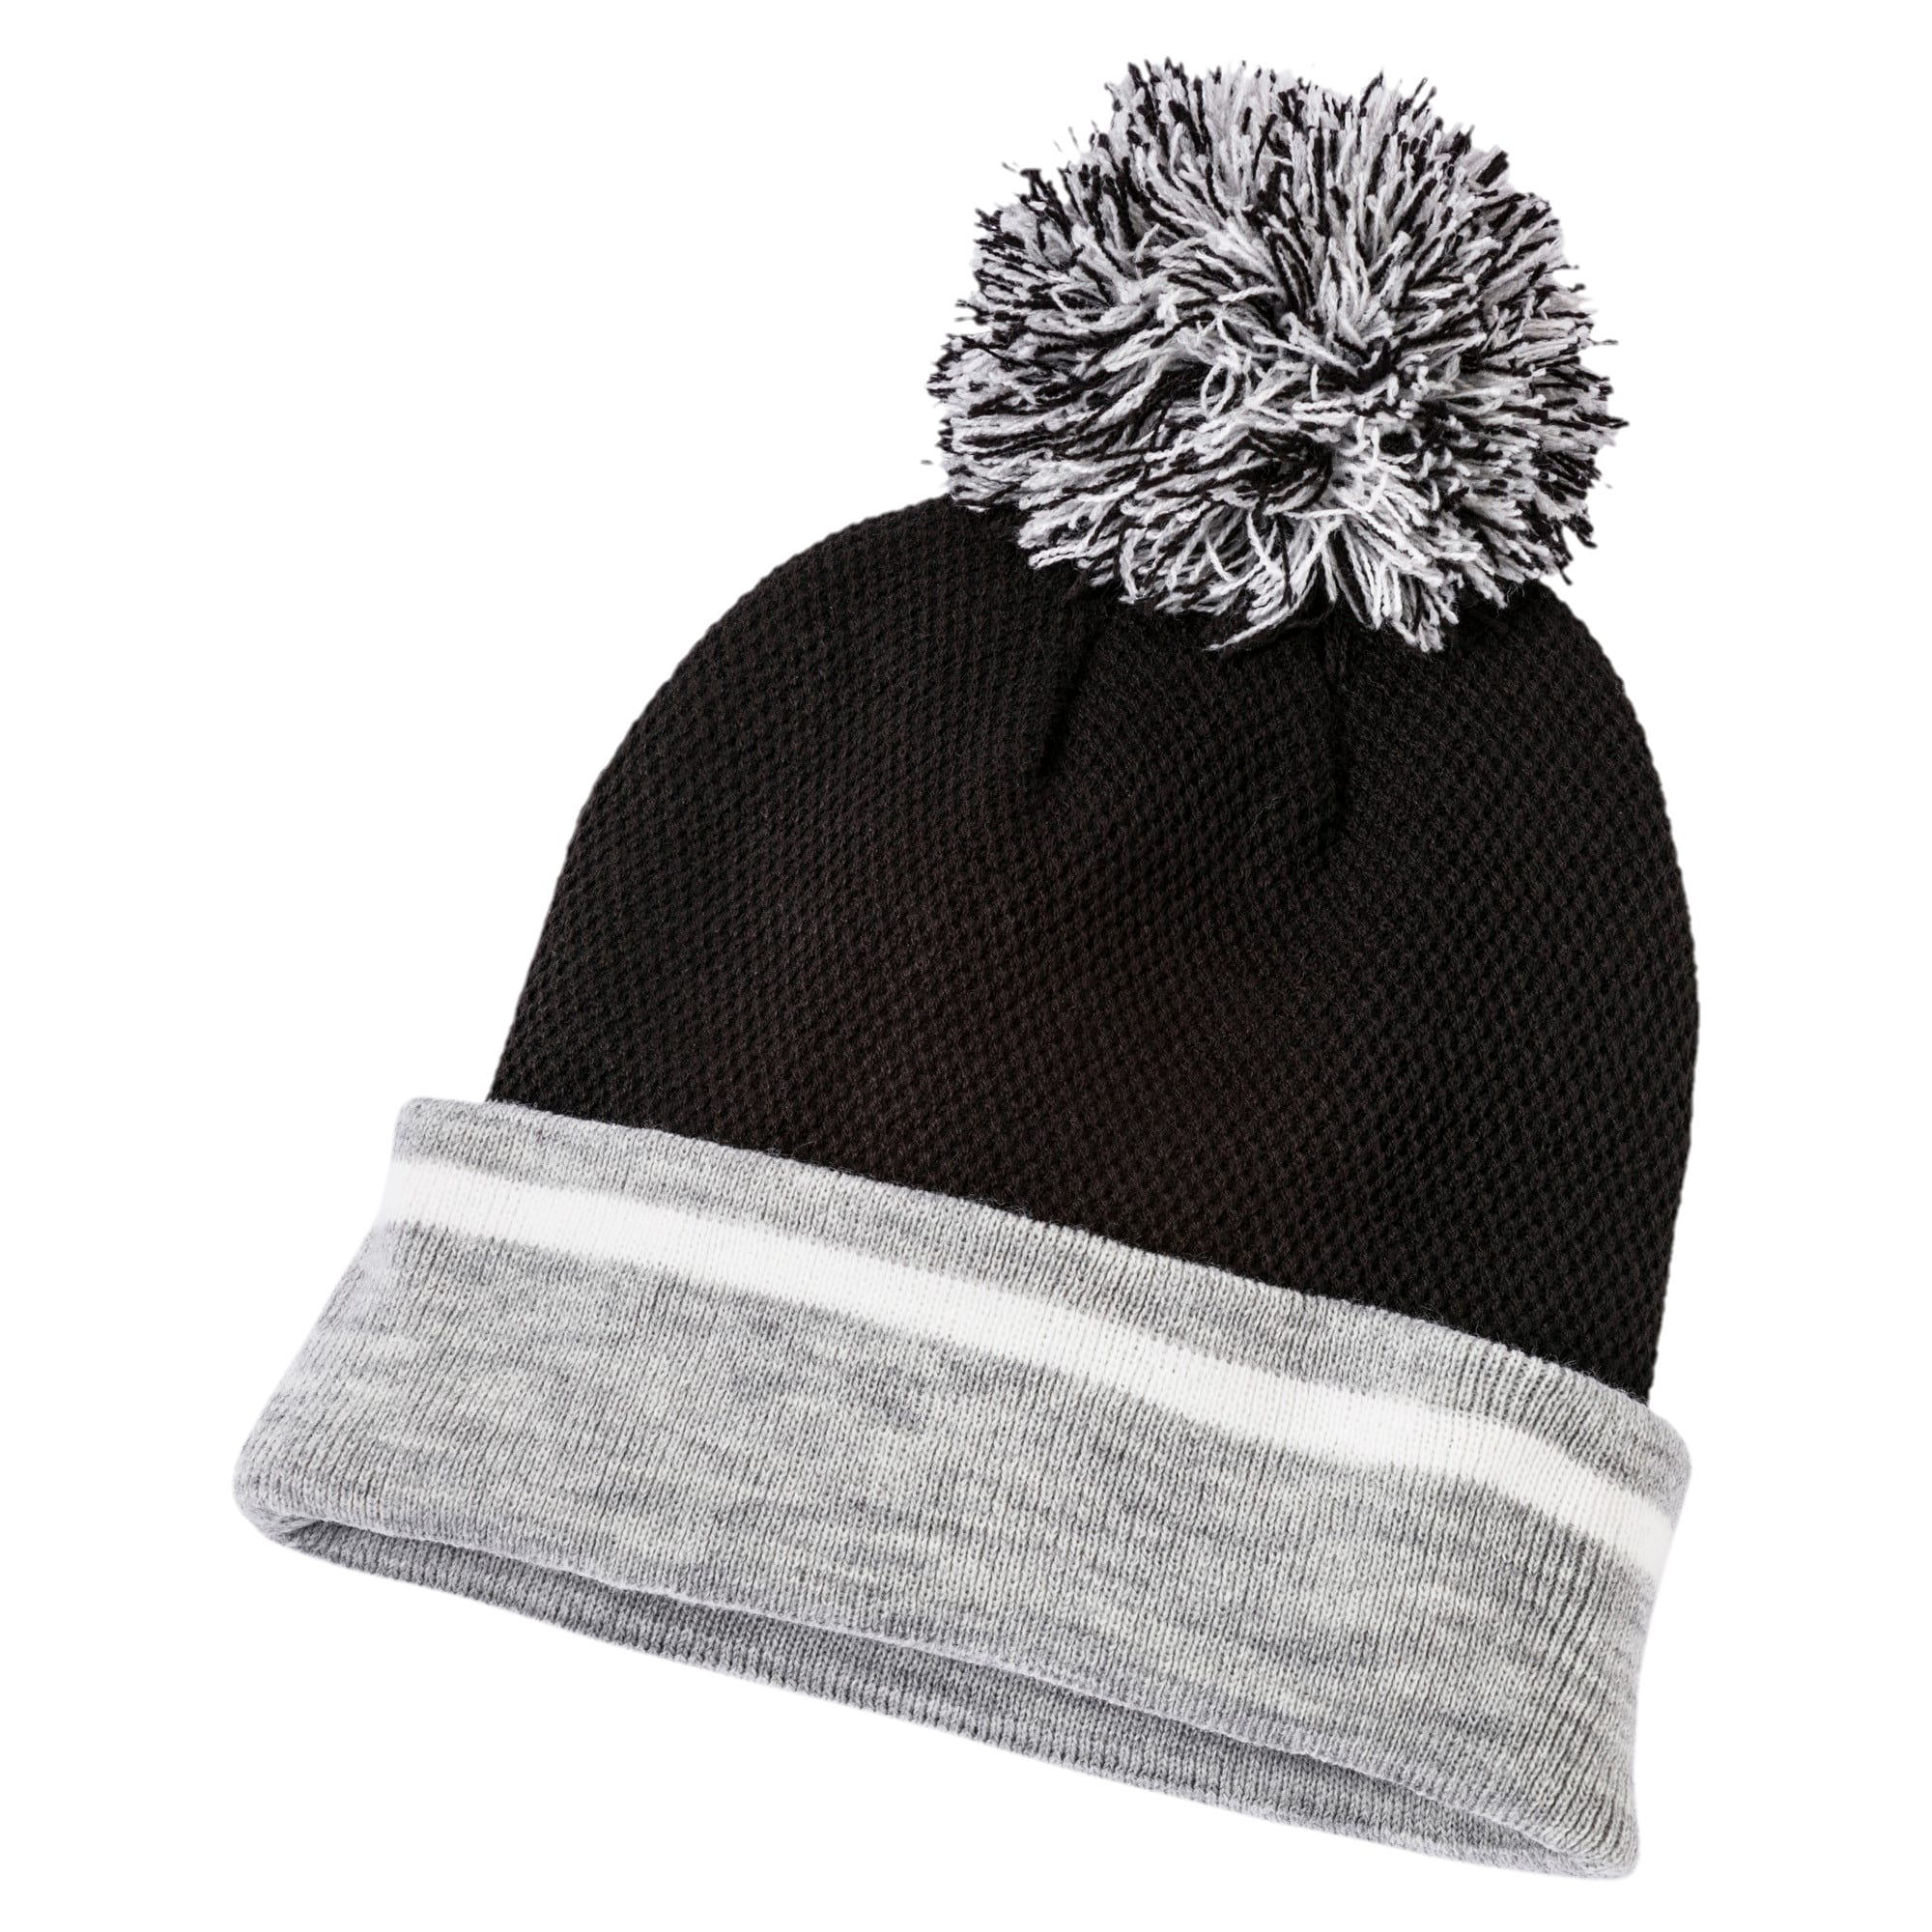 Thumbnail 2 of Women's Pom-Pom Beanie, Puma Black-L.Gray hthr, medium-IND